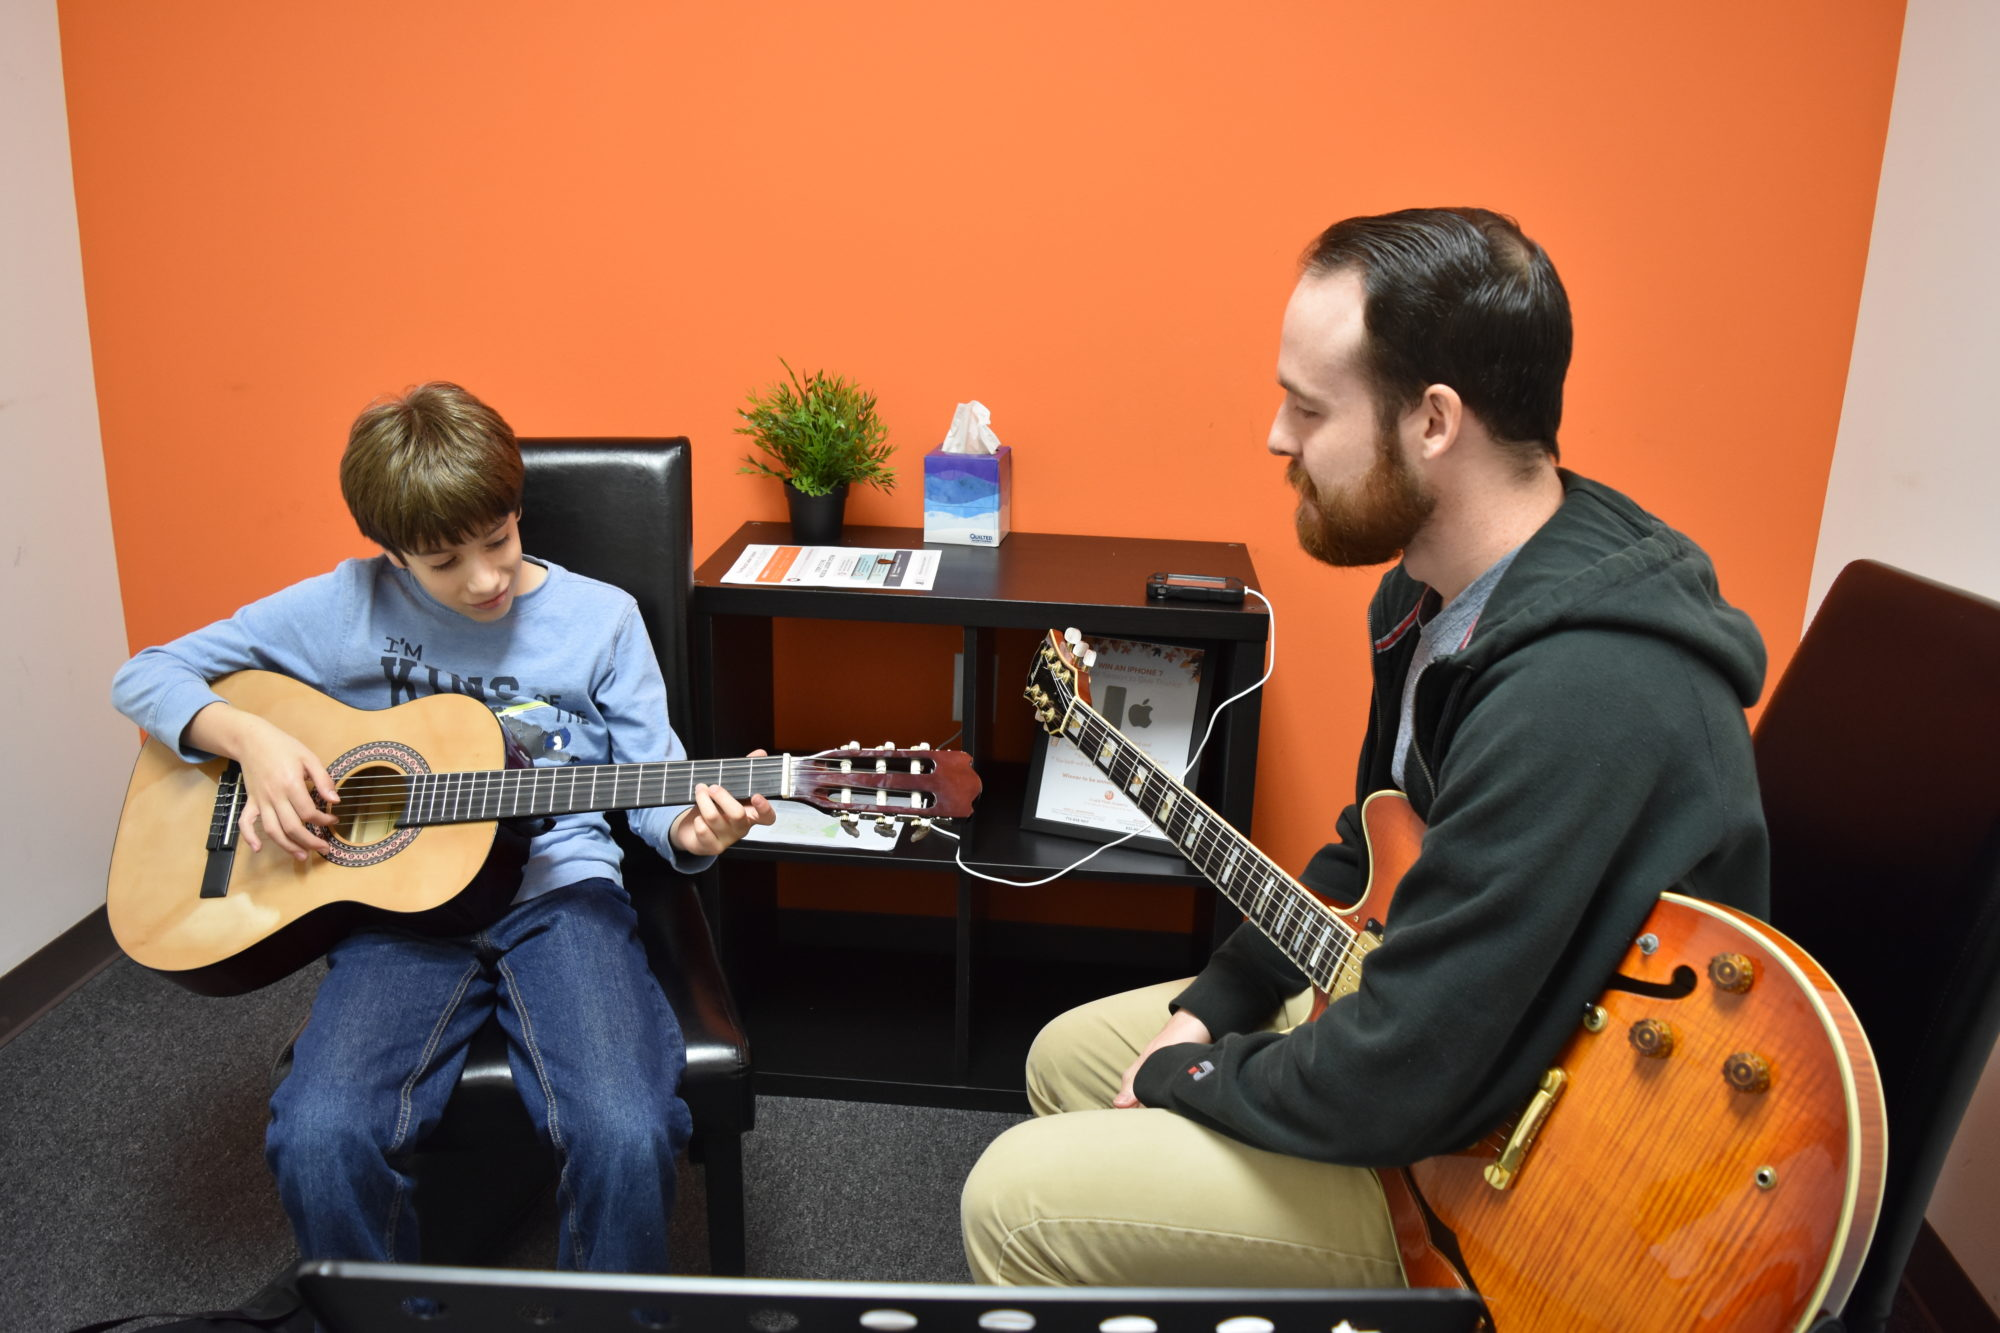 Guitar Lessons at Vivaldi Music Academy